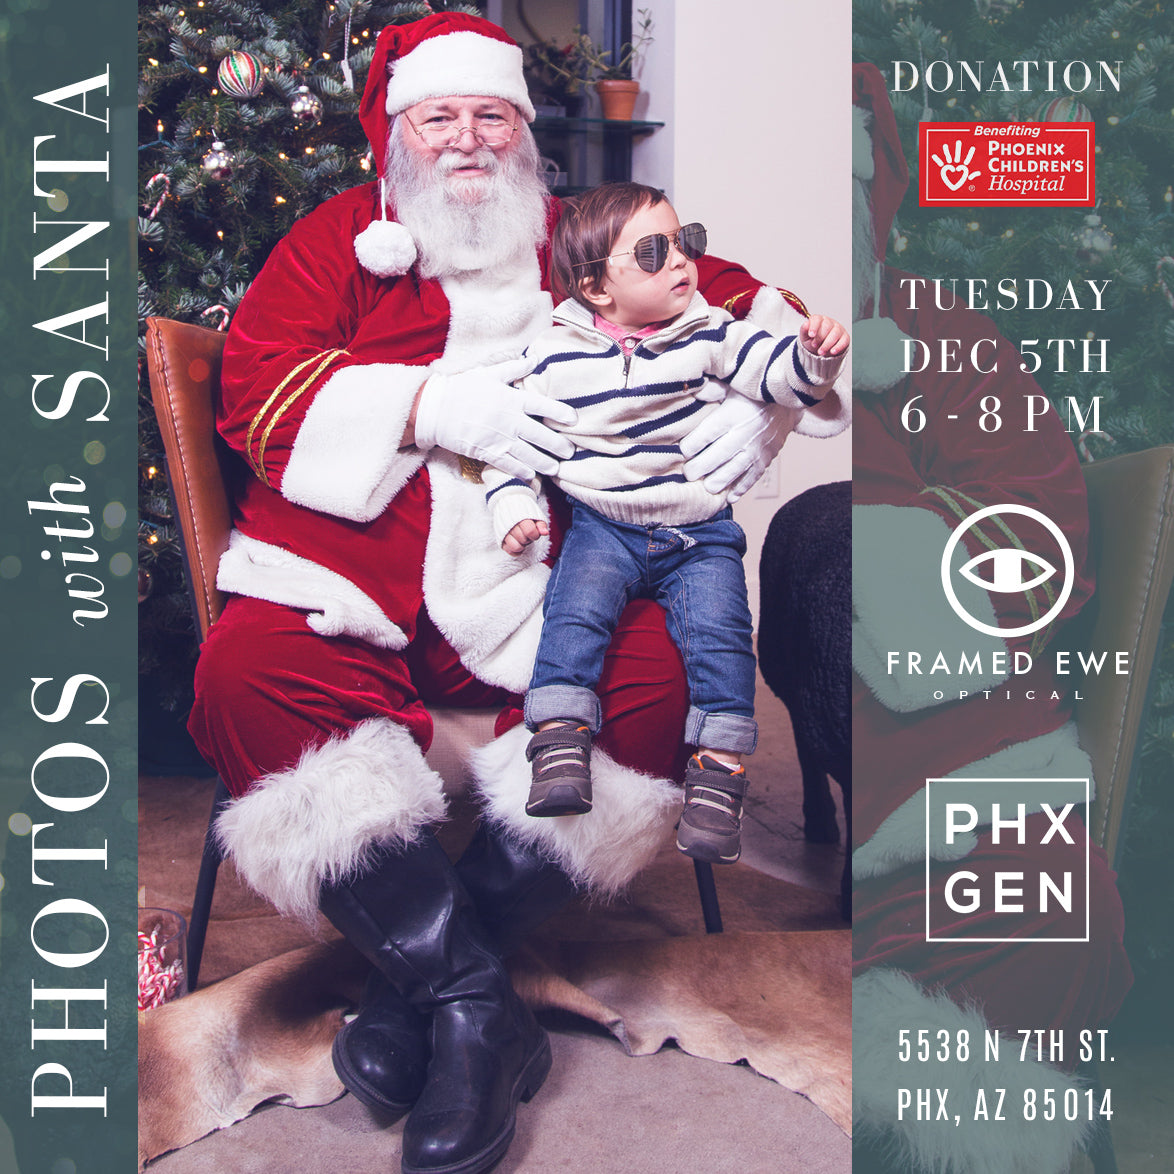 HO HO HO! Photos with Santa at Framed Ewe and Phoenix General